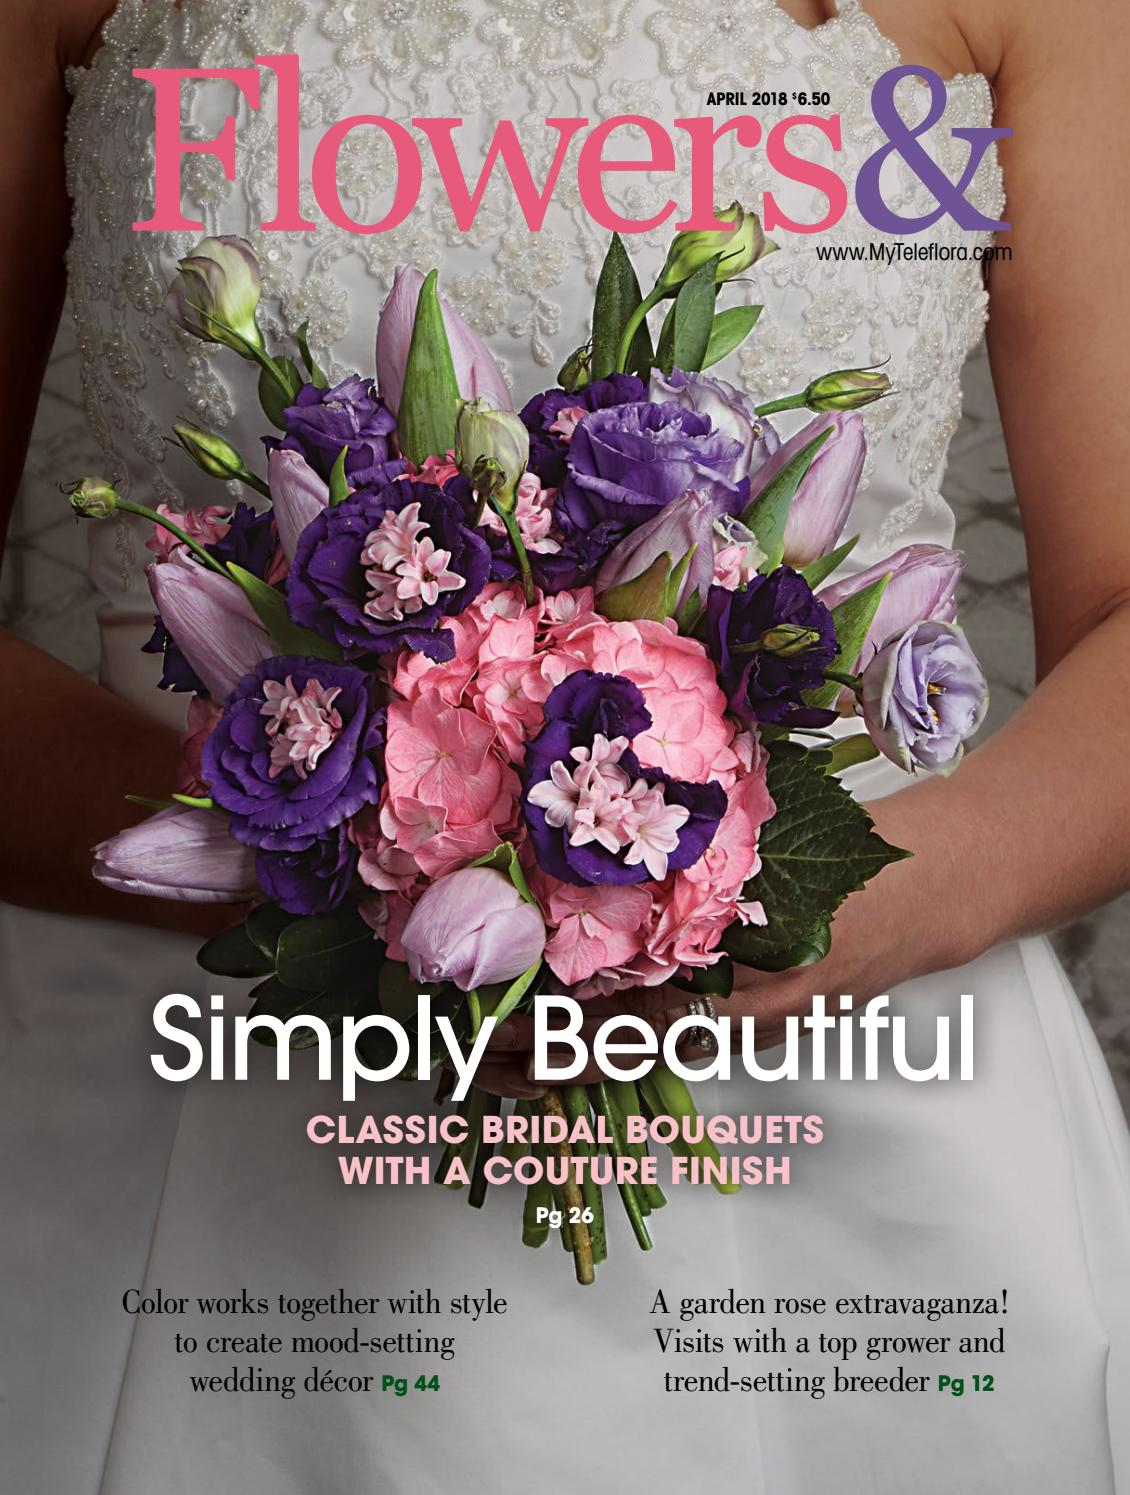 candle and lantern wedding decor washington dc wedding.htm flowers  april 2018 by teleflora issuu  flowers  april 2018 by teleflora issuu